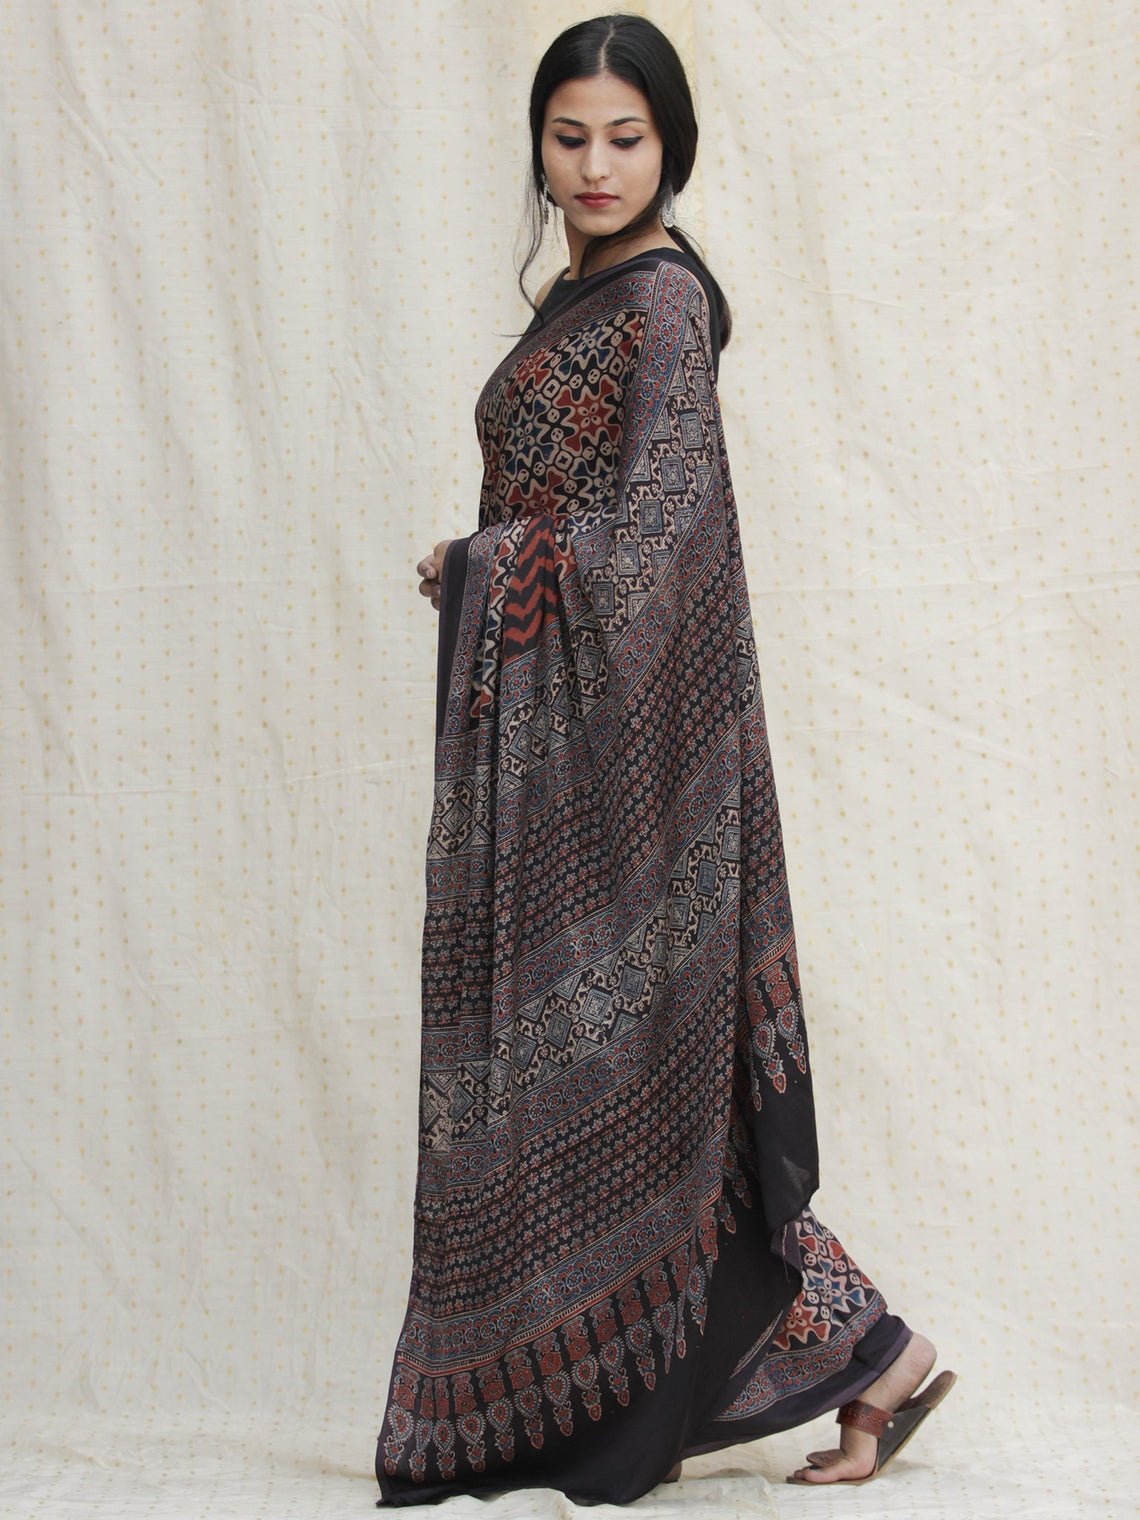 Charcoal Black Maroon Ivory  Ajrakh Hand Block Printed Modal Silk Saree - S031704128